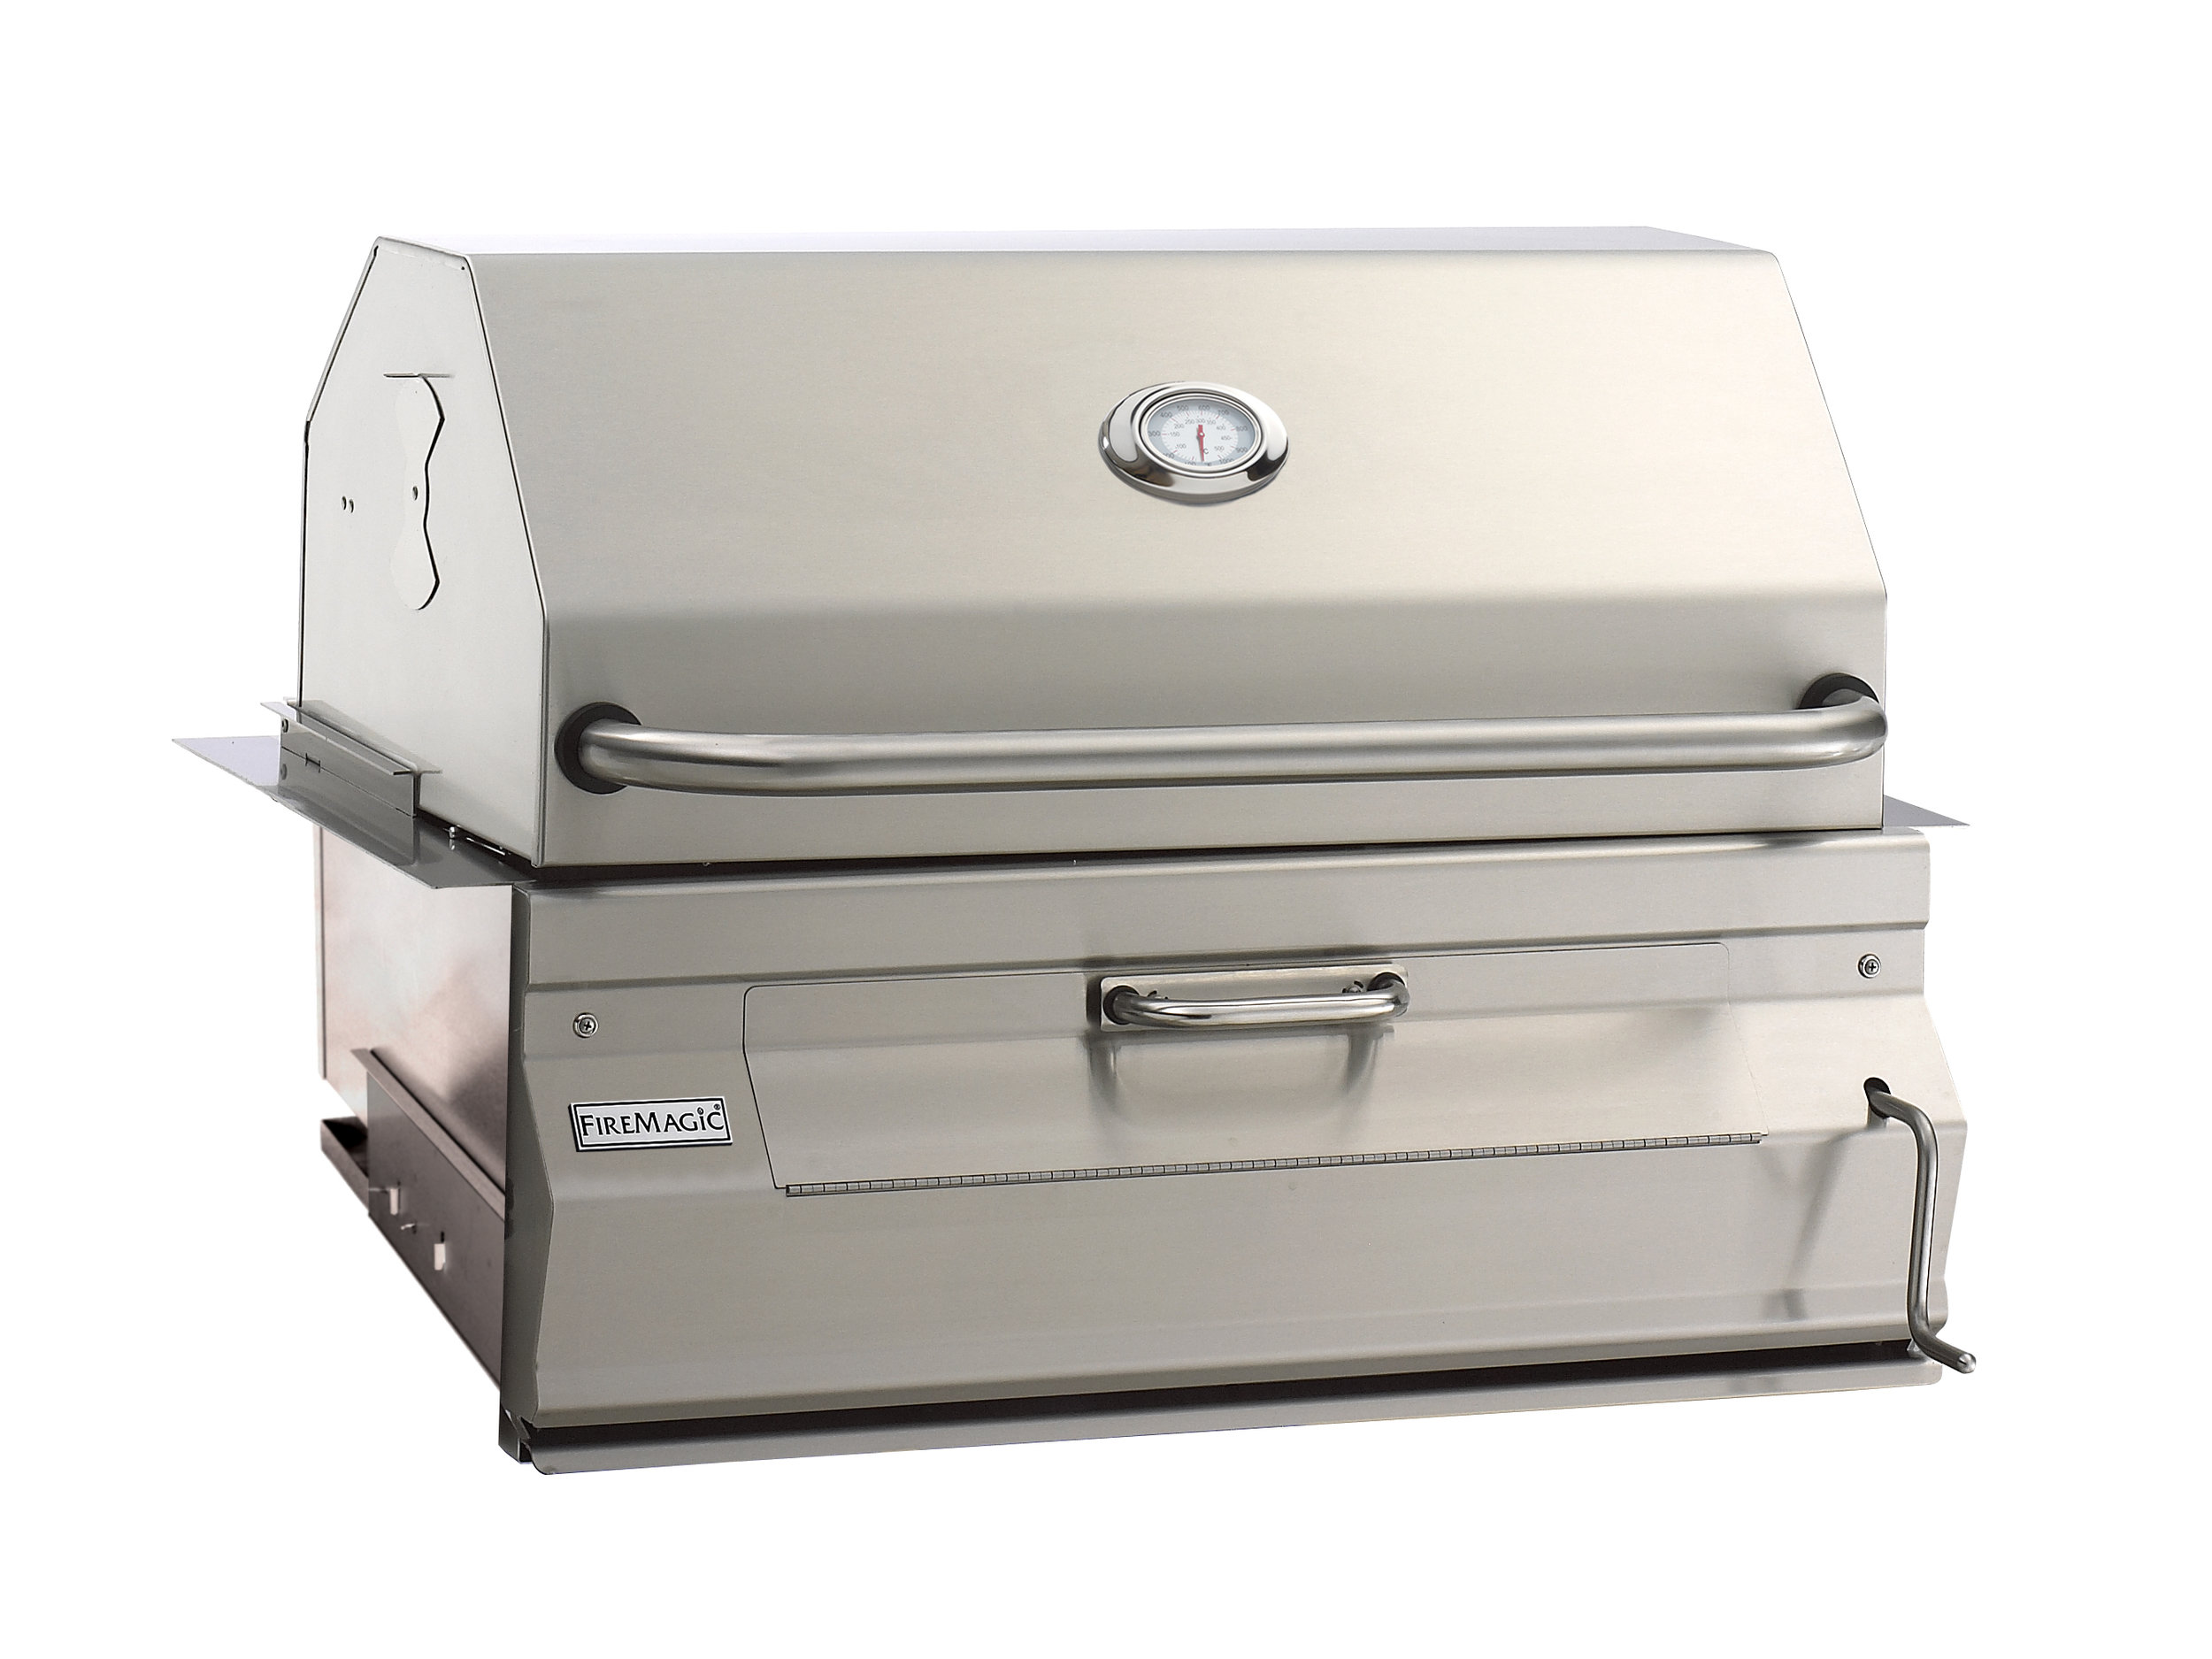 FM_14-SC 30_ S.S. Charcoal Built-in Grill.jpg